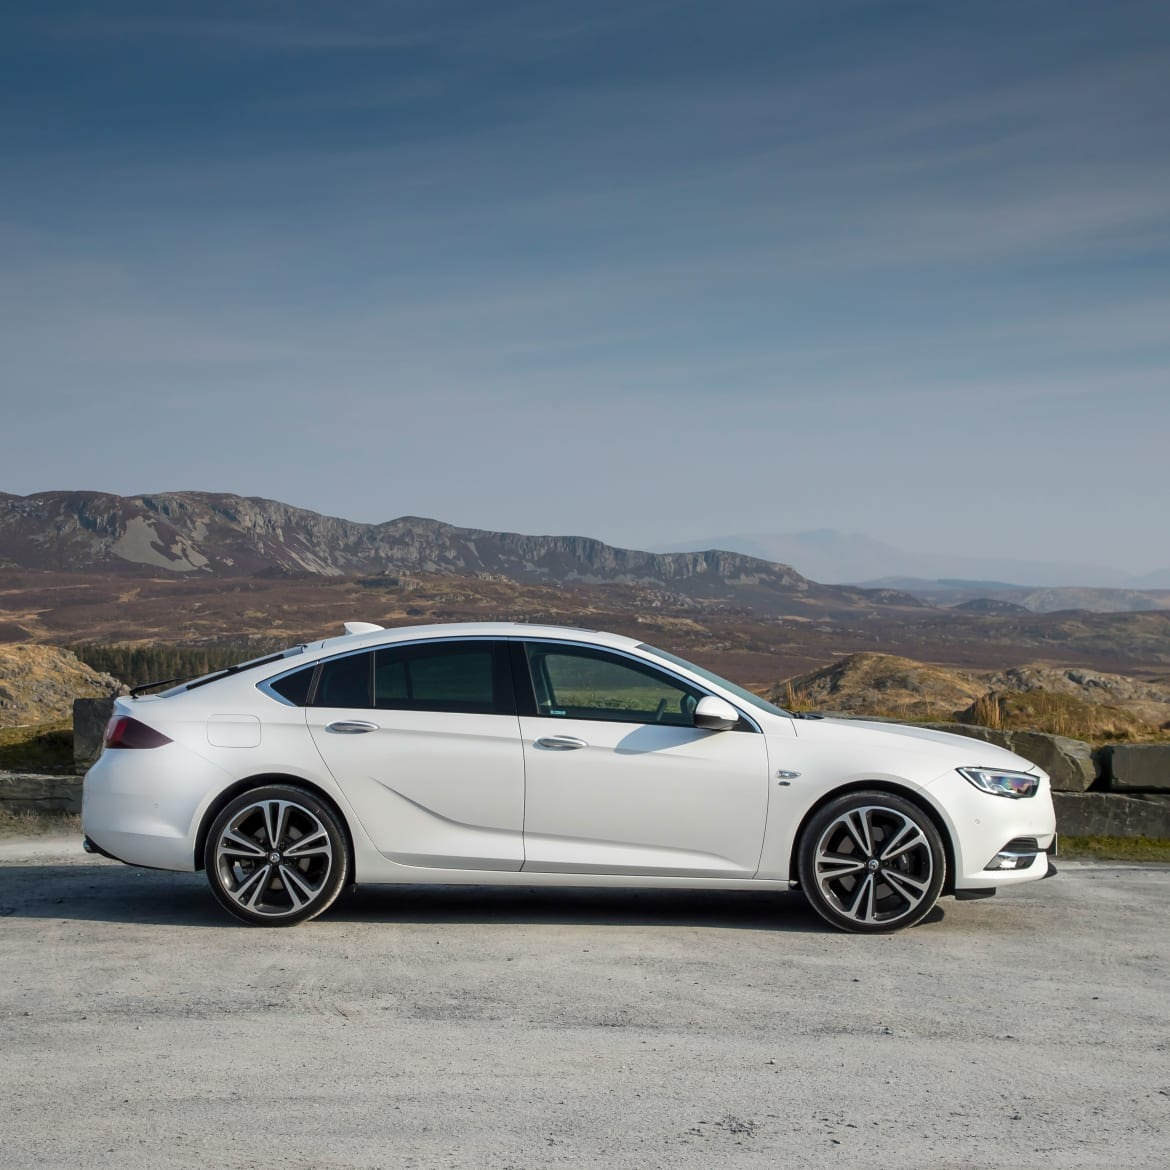 Insignia Grand Sport - a car you can depend on